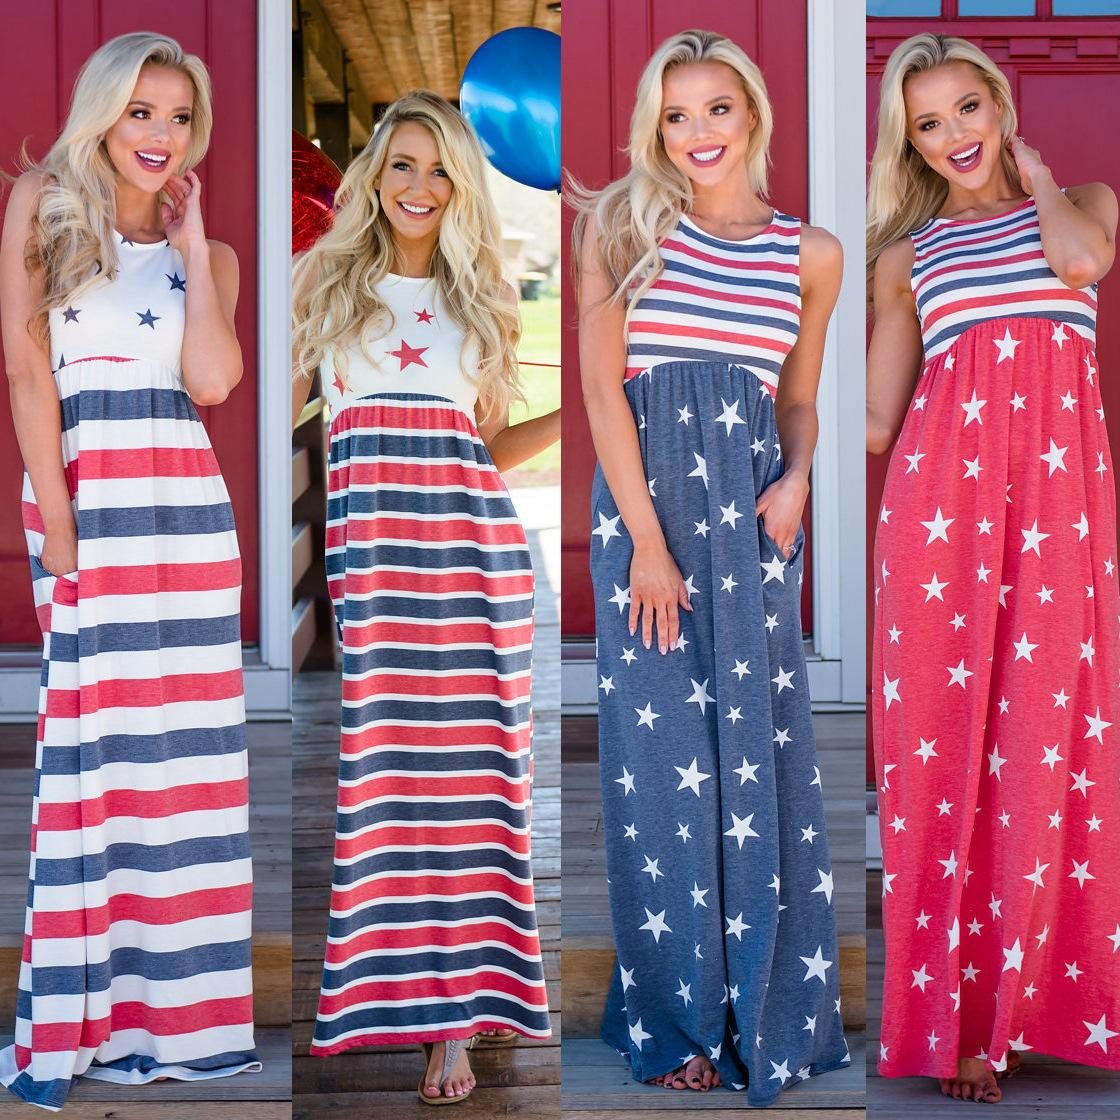 99fd7906745 2019 Women Ladies Stars Stripe Maxi Dress Clubwear Party Independence Day  Sleeveless Maternity Print Casual Dresses AAA451 From Kids dress